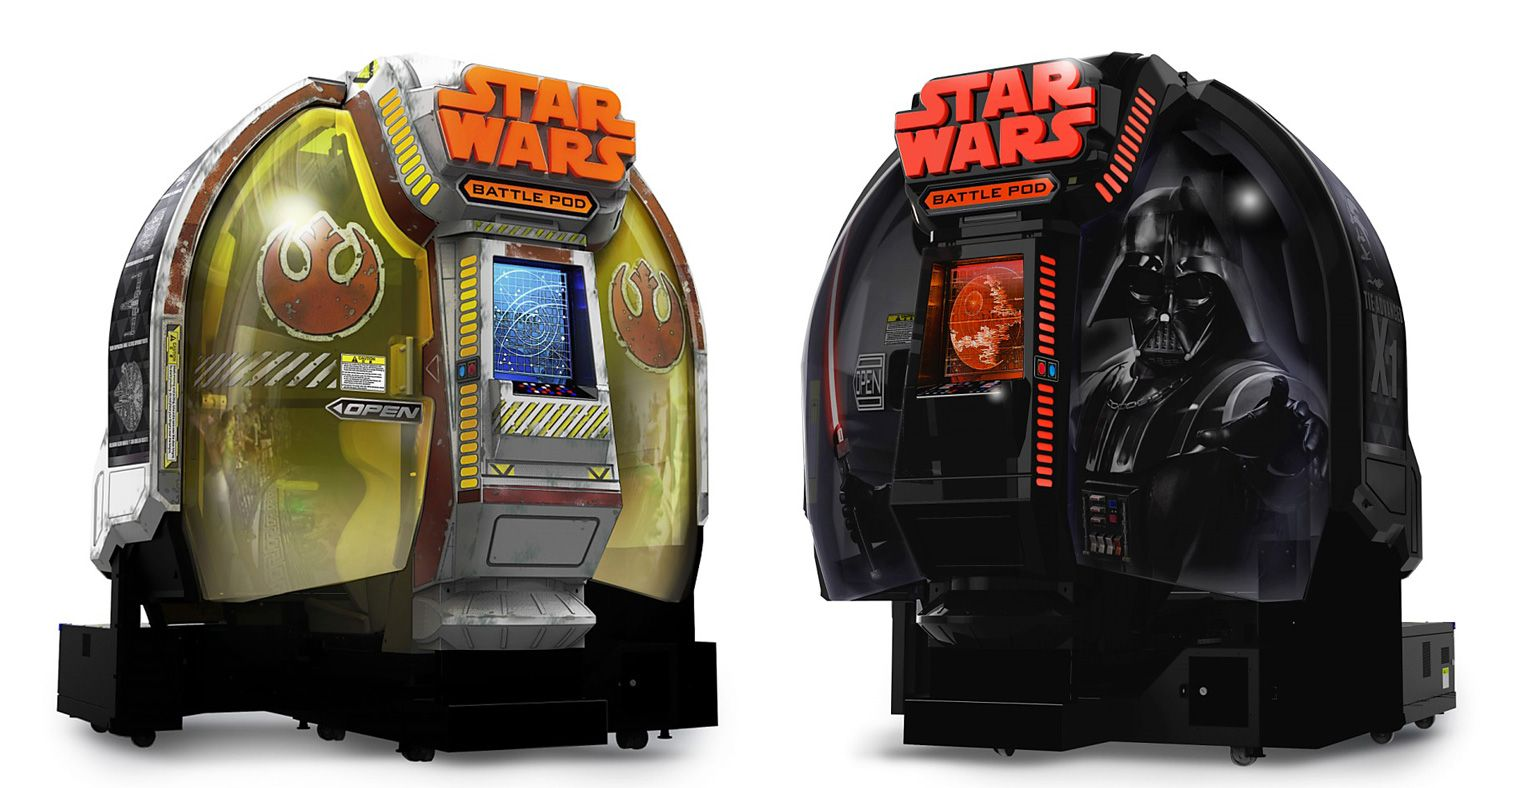 star_wars_battle_pod_arcade.jpg